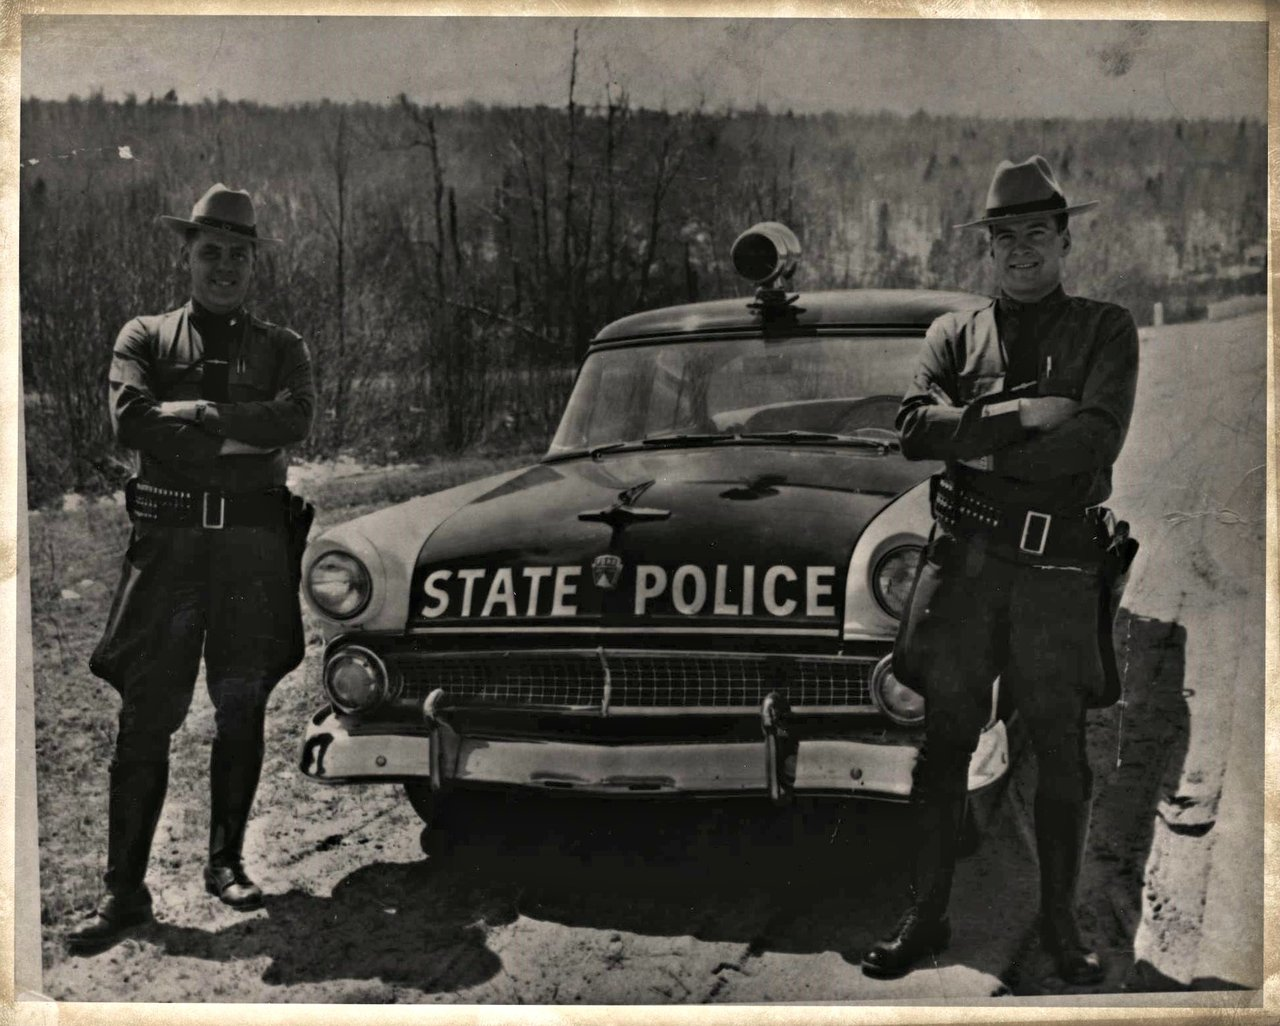 Trooper J.S. Kelley, and Trooper Jack Lawliss, 1955 in Tupper Lake